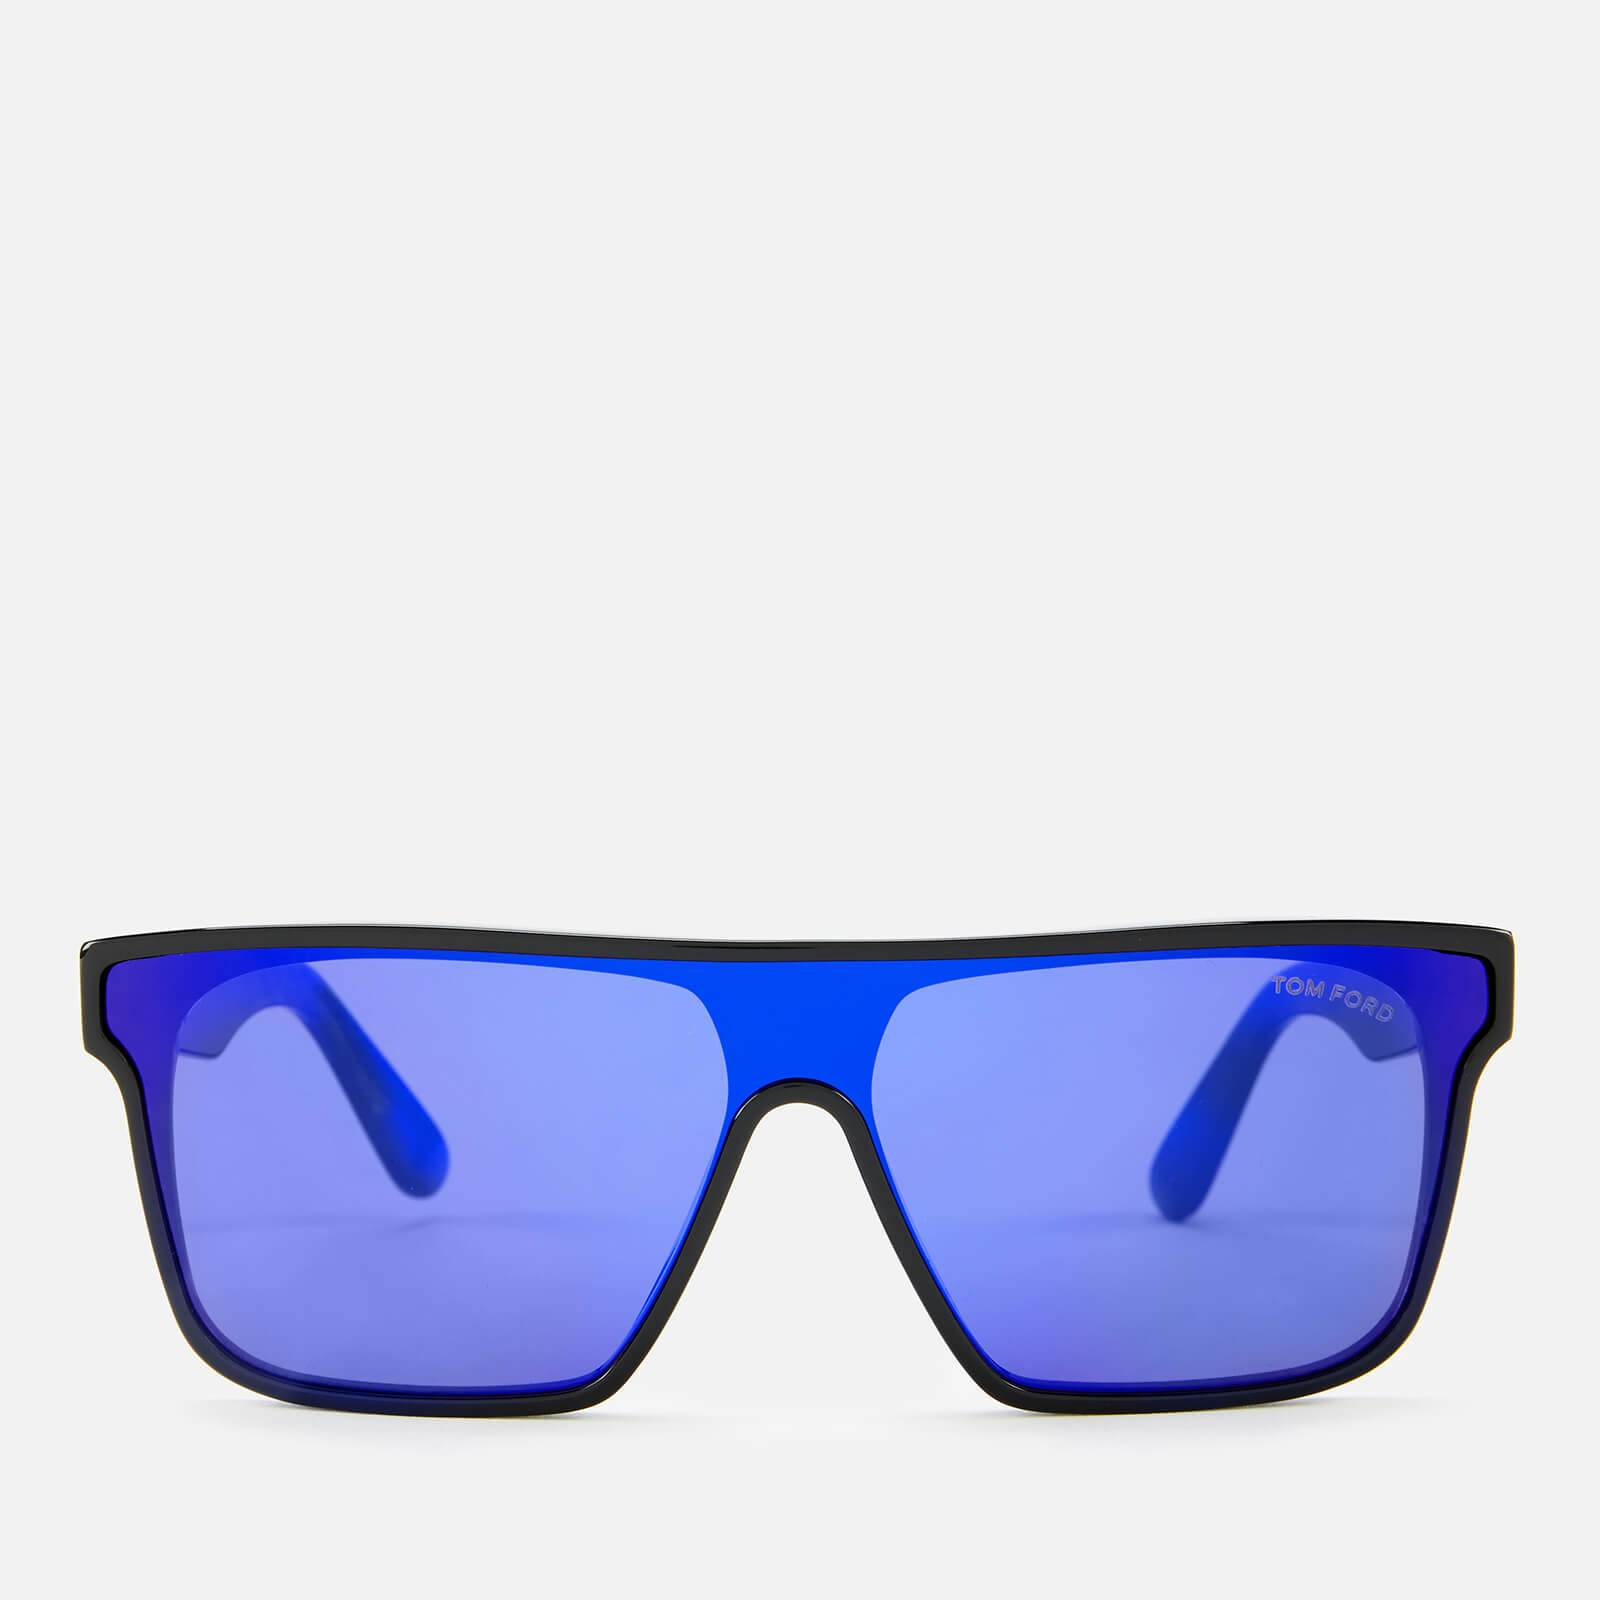 Tom Ford Women's Whyat Sunglasses - Shiny Black/Gradient or Mirror Violet